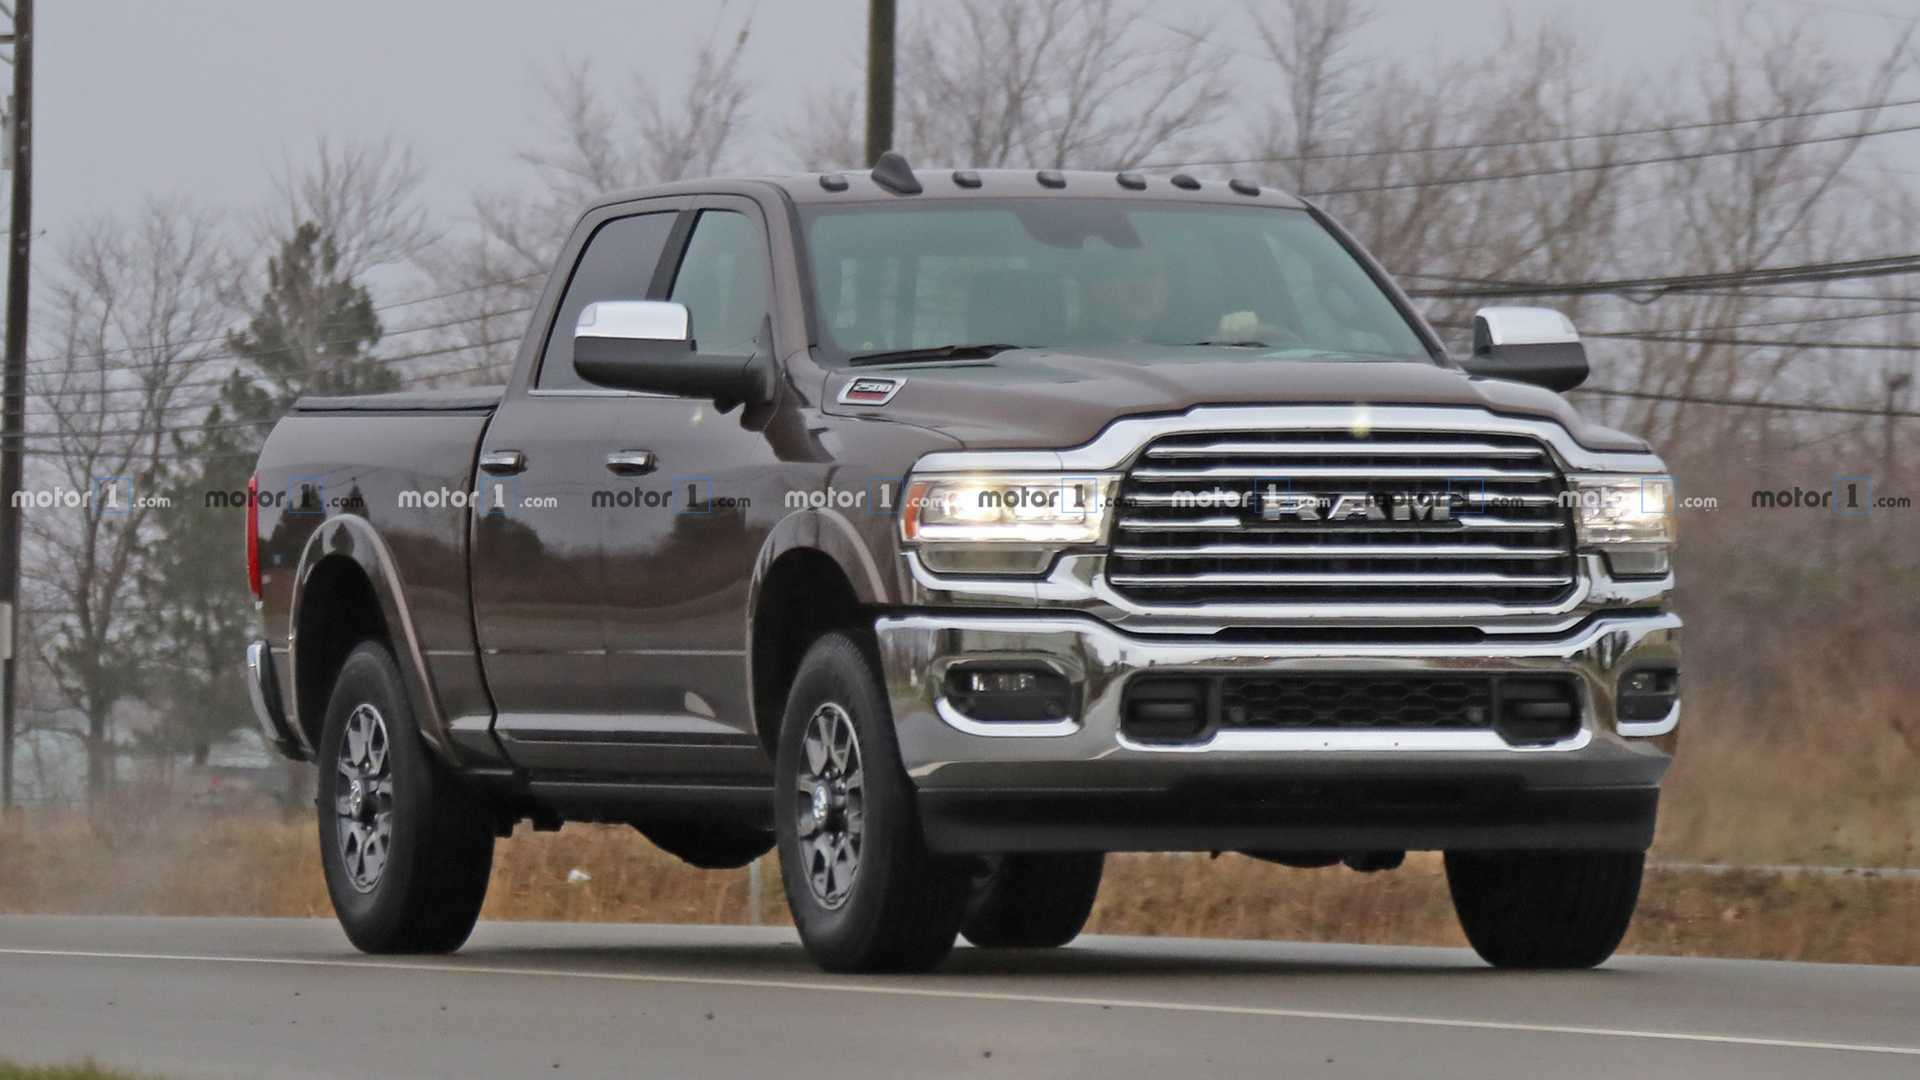 90 The Best 2020 Ram 3500 Price